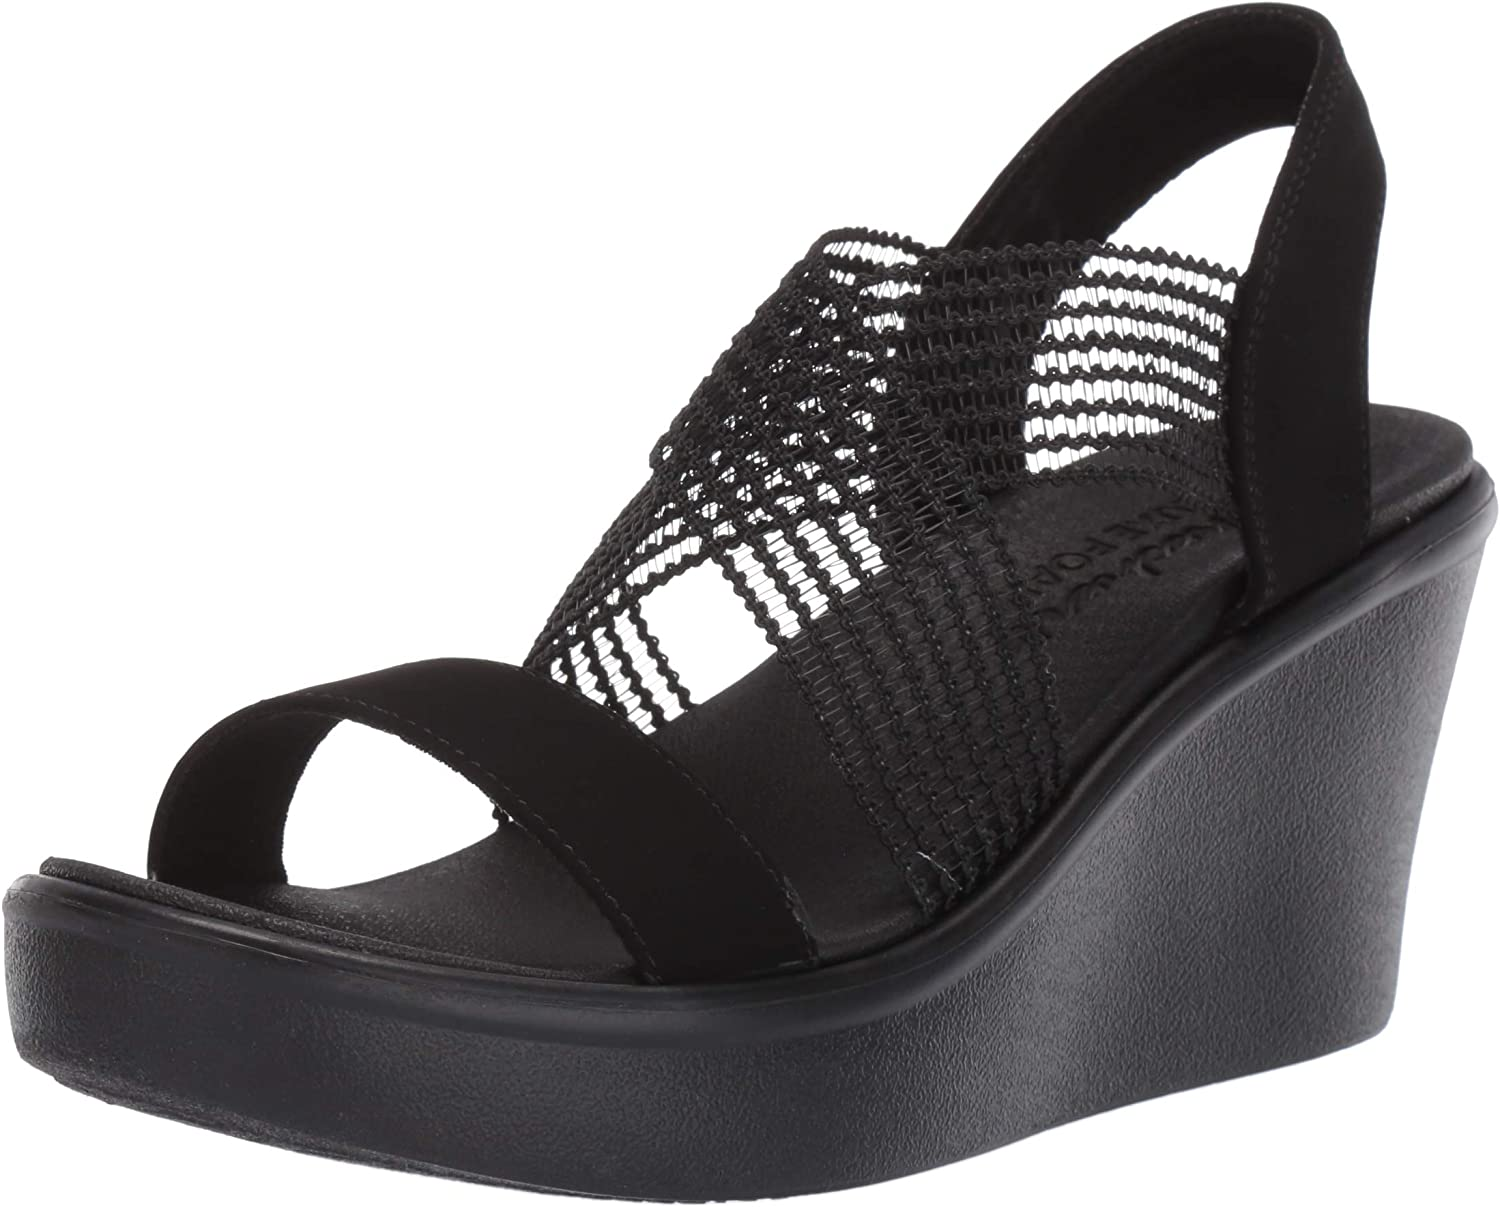 Skechers Women's Max 61% OFF Rumble Up Cloud - Chaser Outlet sale feature